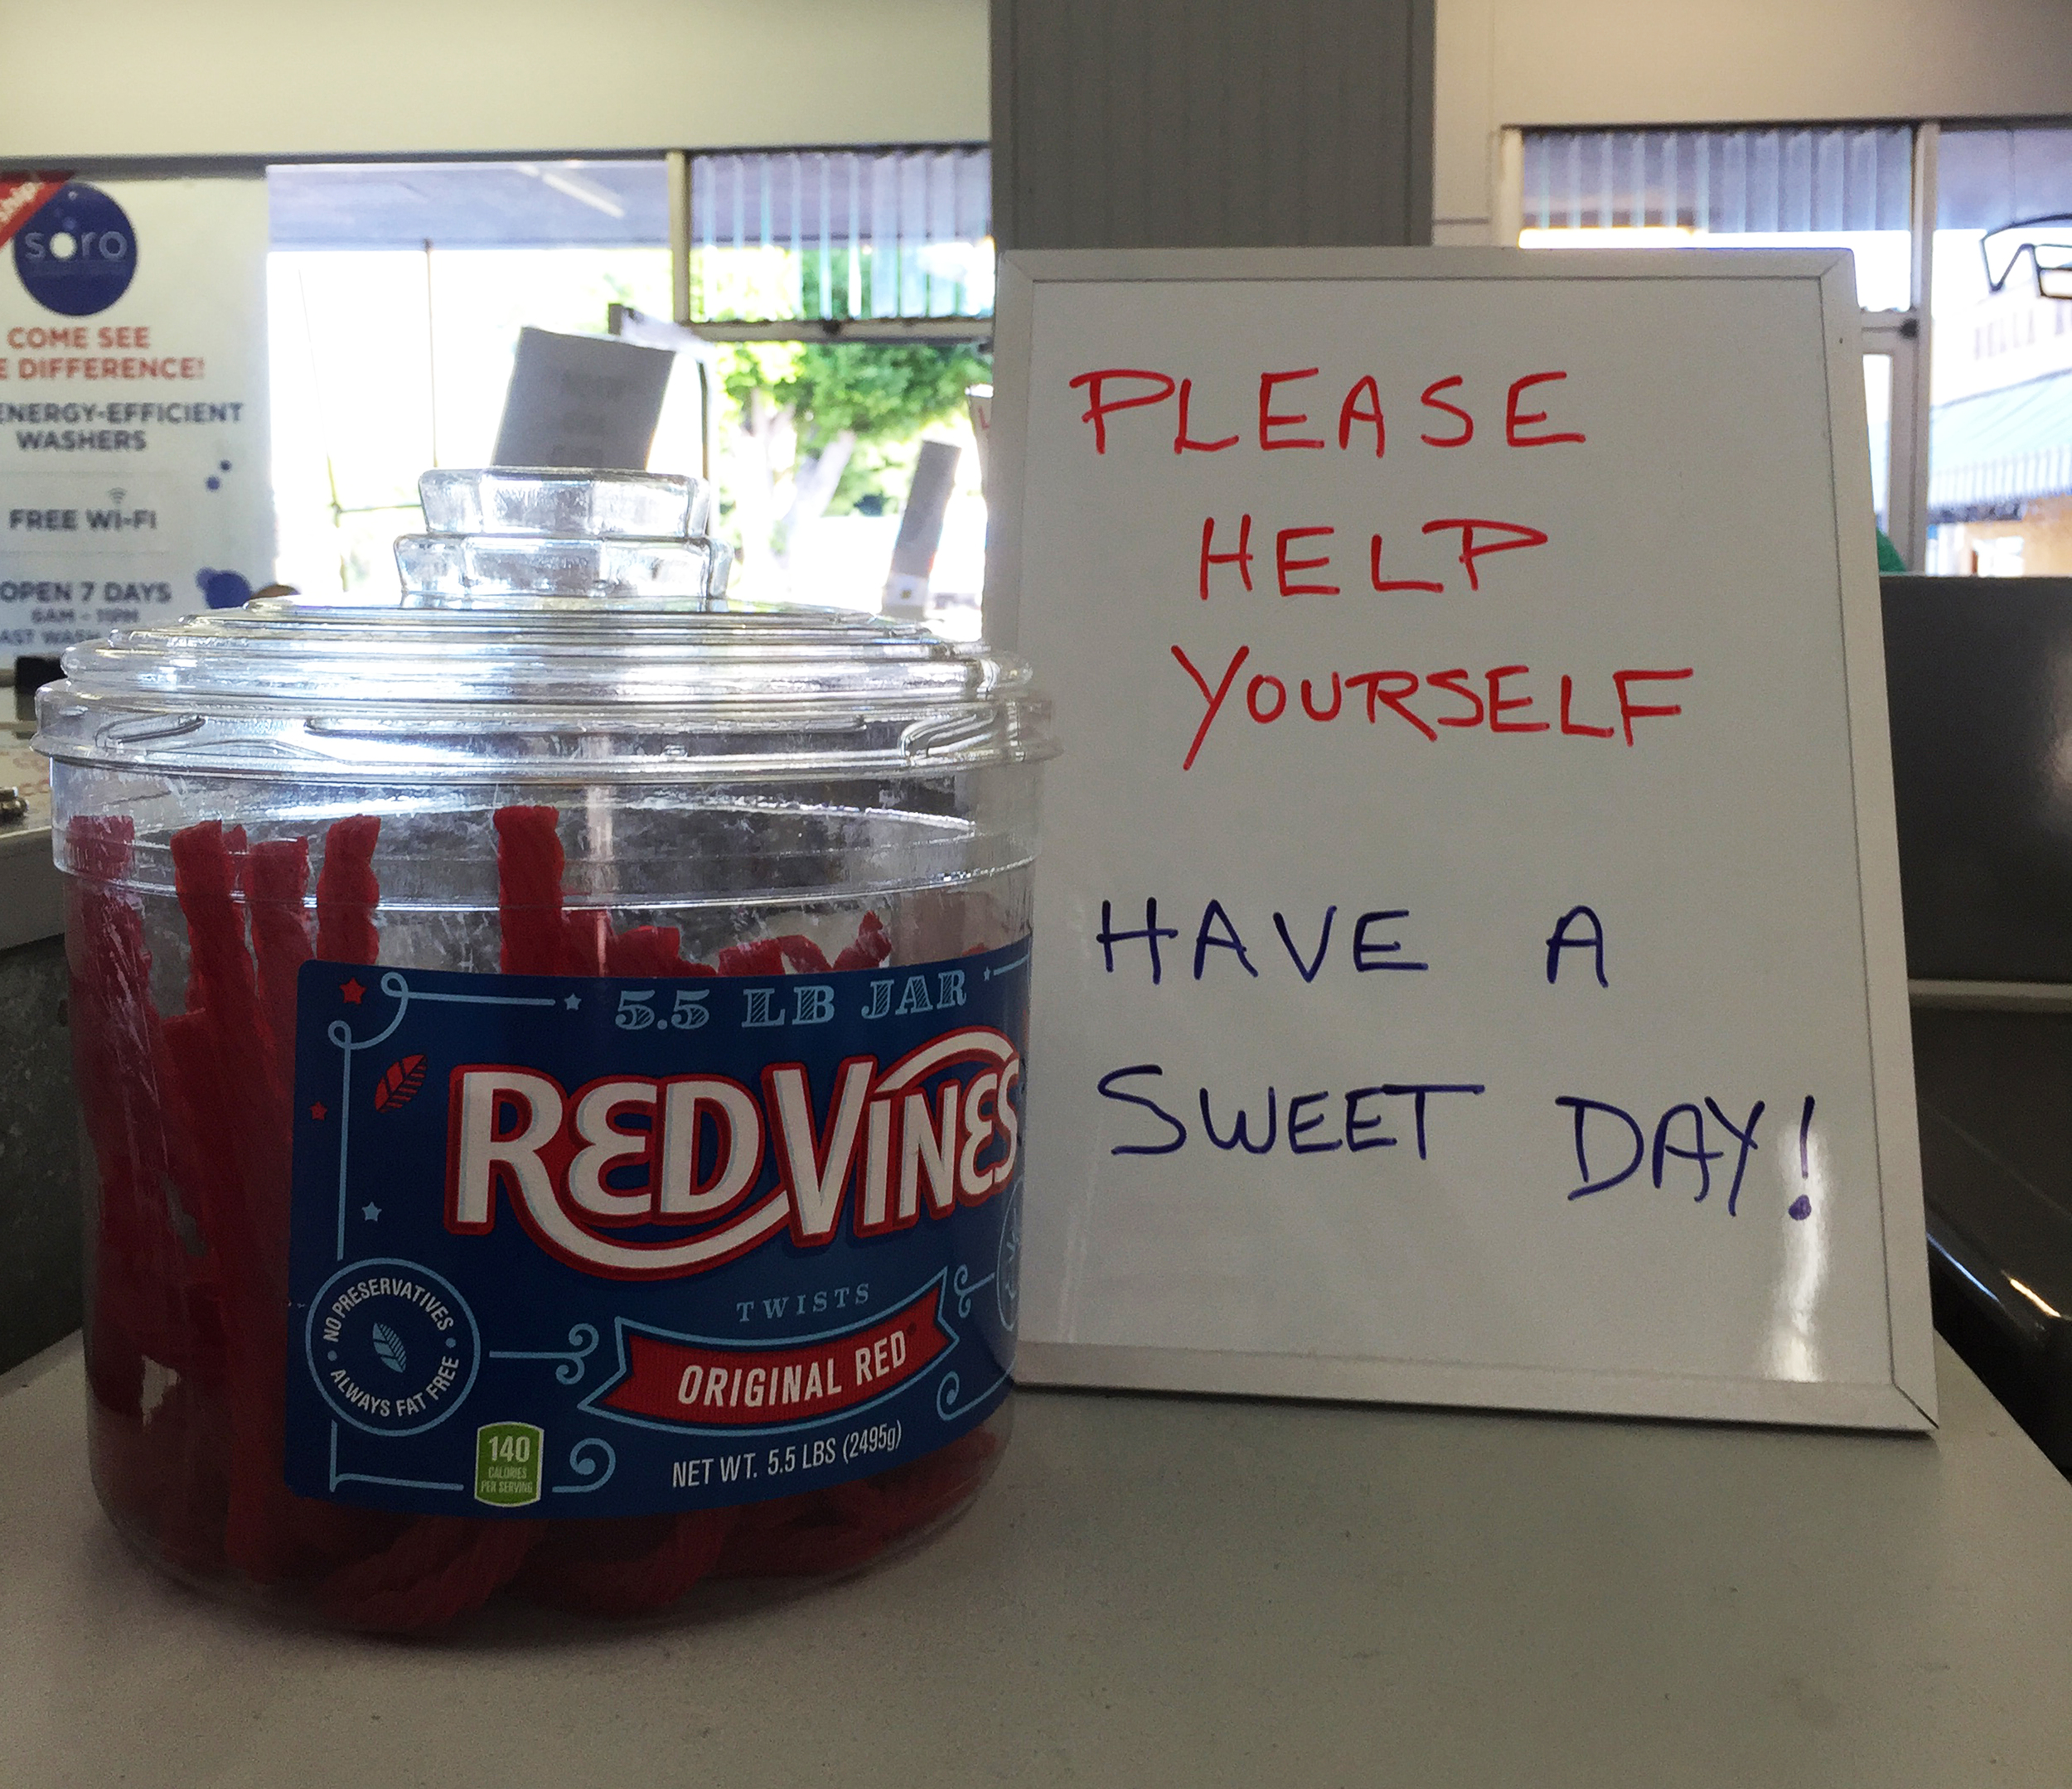 Sweet treats for our sweet customers!